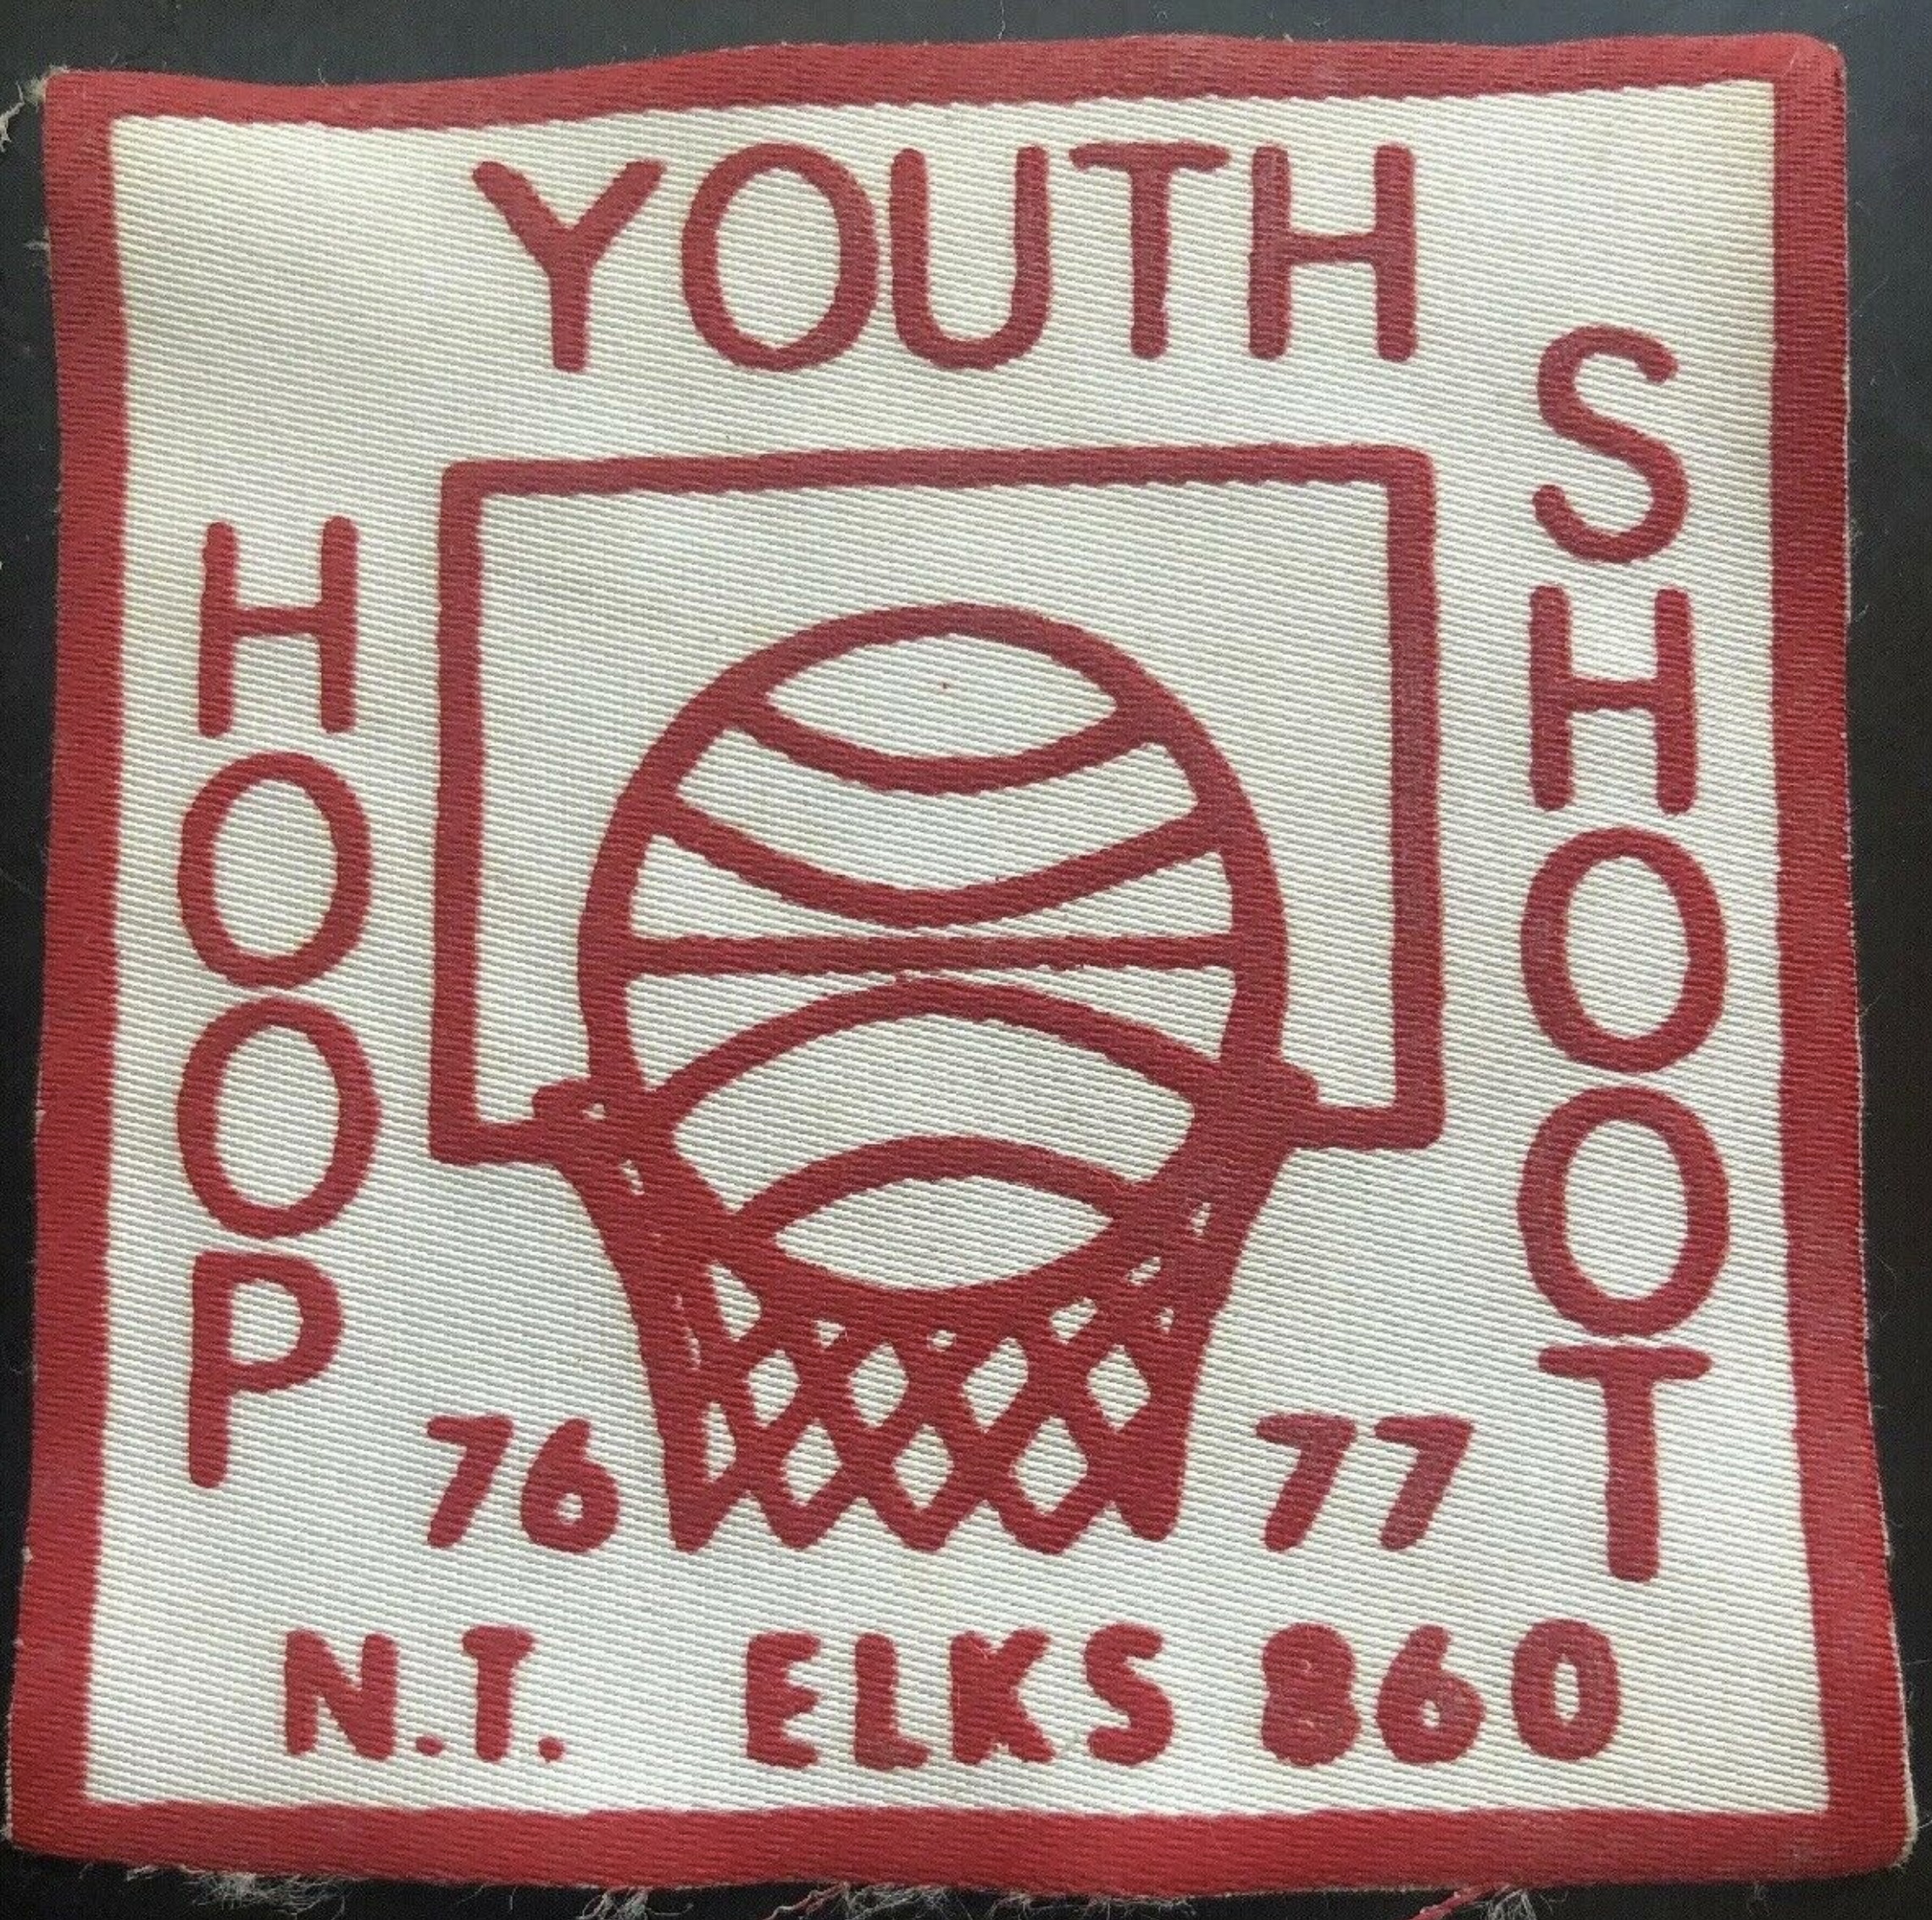 Youth Hoop Shoot, 76-77, NT Elks, patch (c.1977).jpg